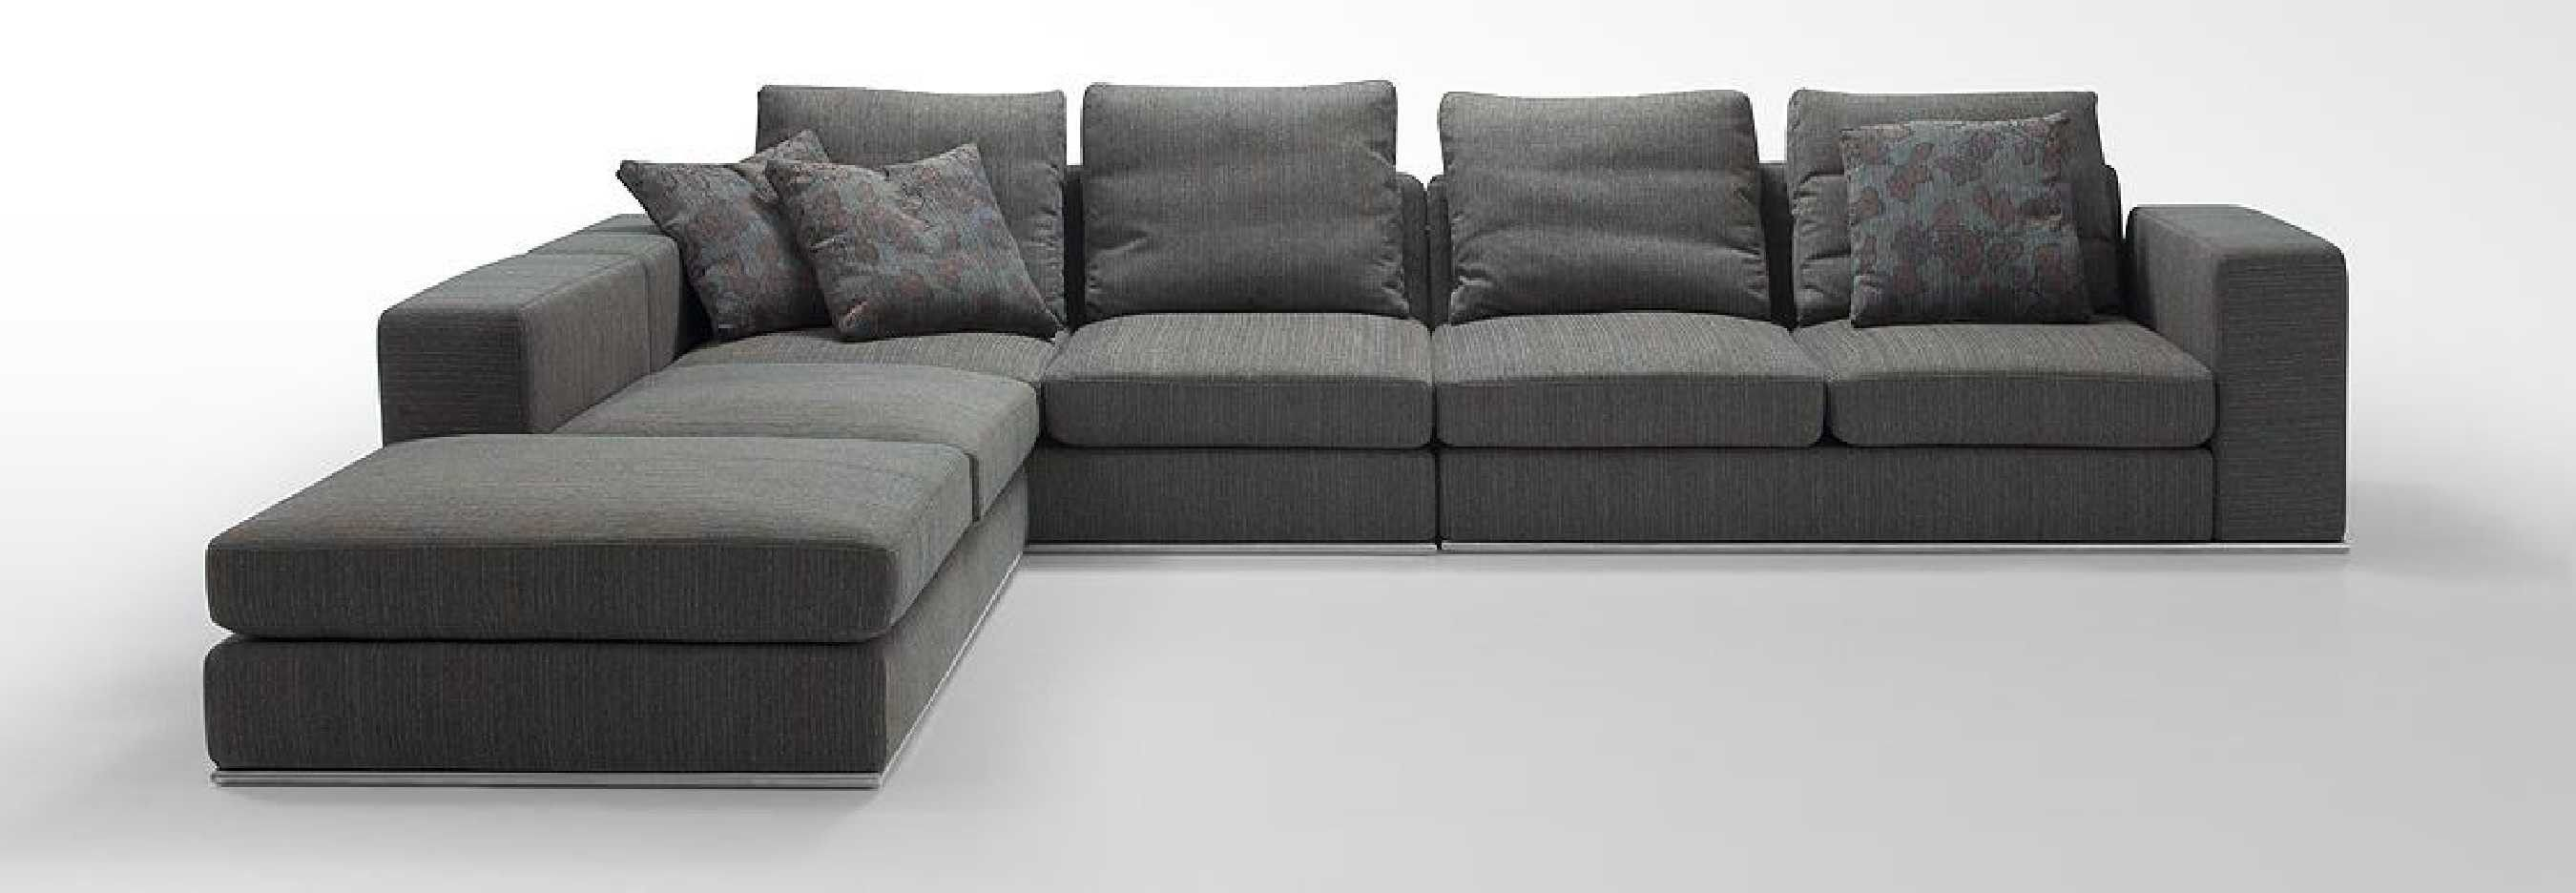 l shaped sofa bed grey sectional sofa